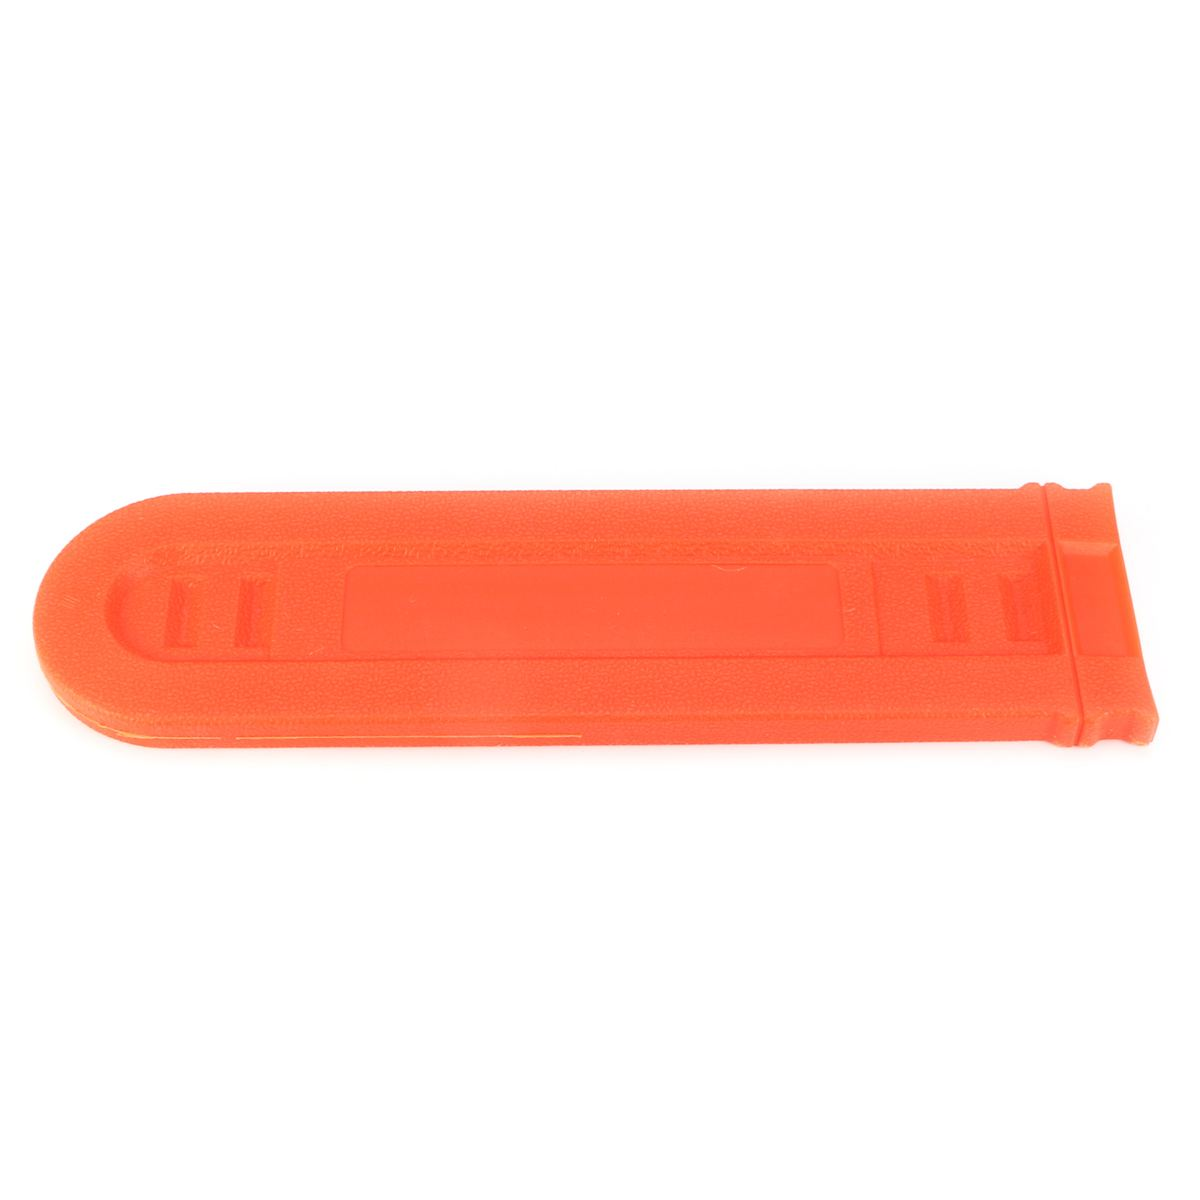 Scabbard Style Shape Plastic 12 Inch Chainsaw Bar Cover Scabbard Protector Universal Guide Plate